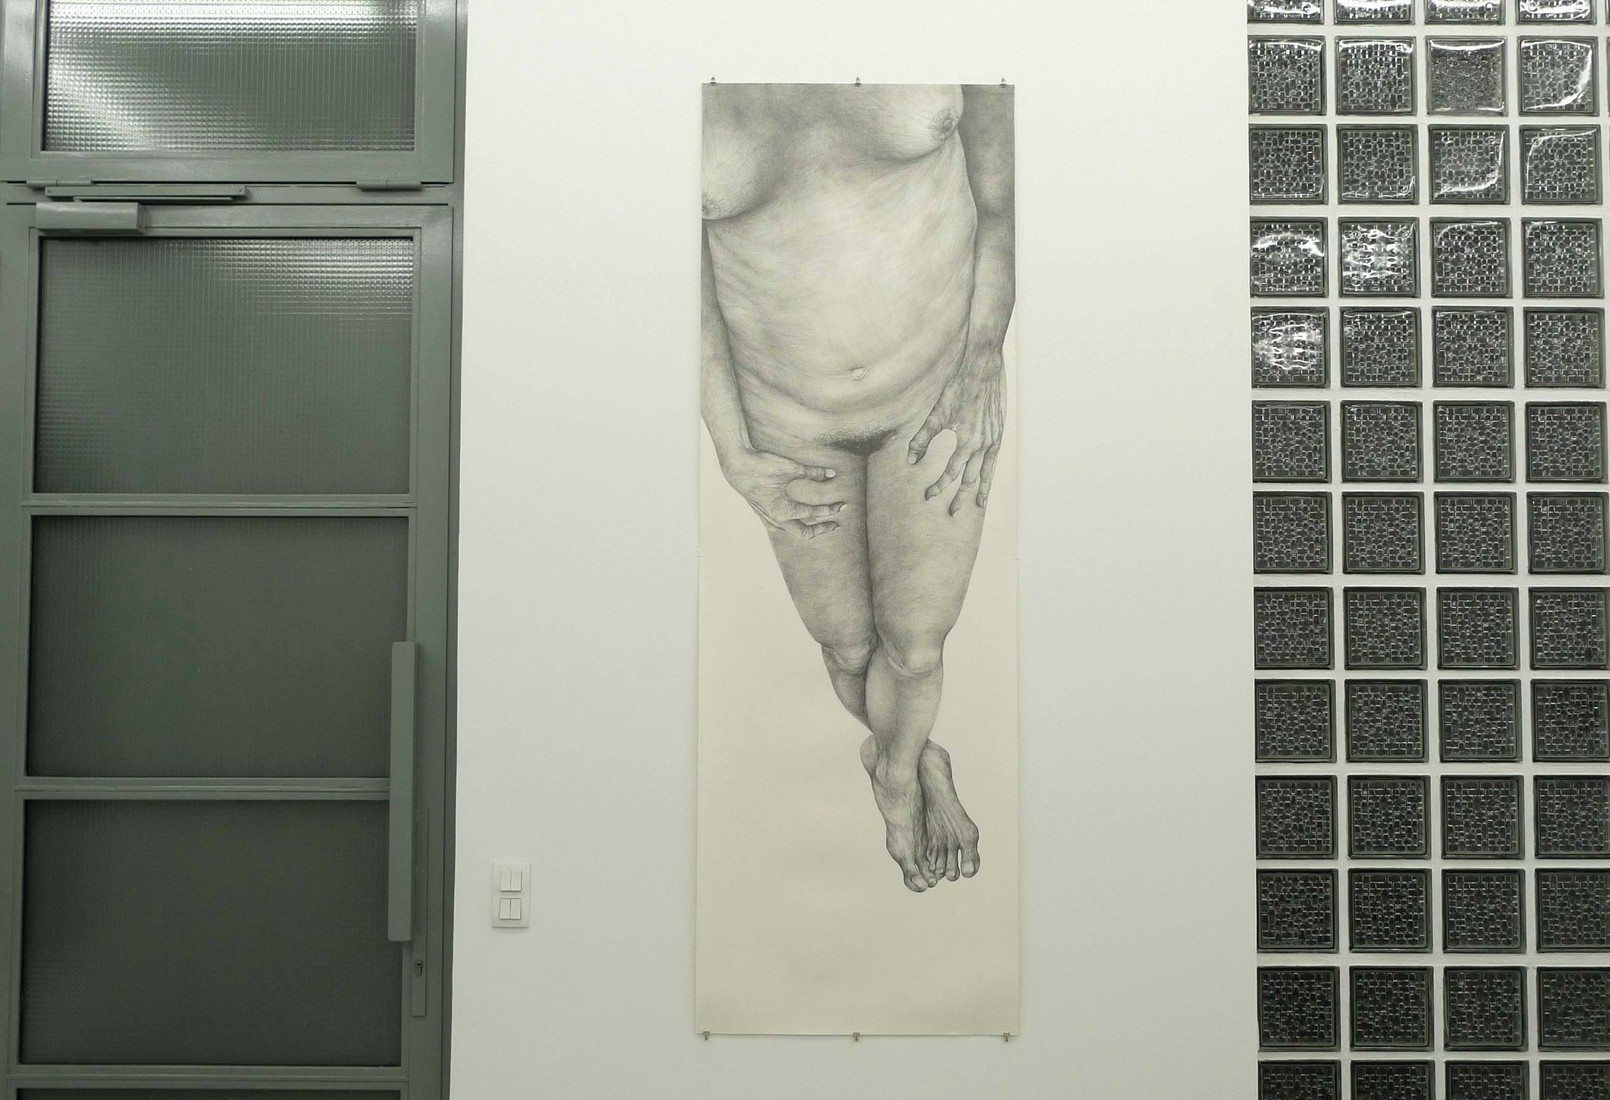 Exhibit views / Vues Le Corps, Les Songes / The Body, Dreams